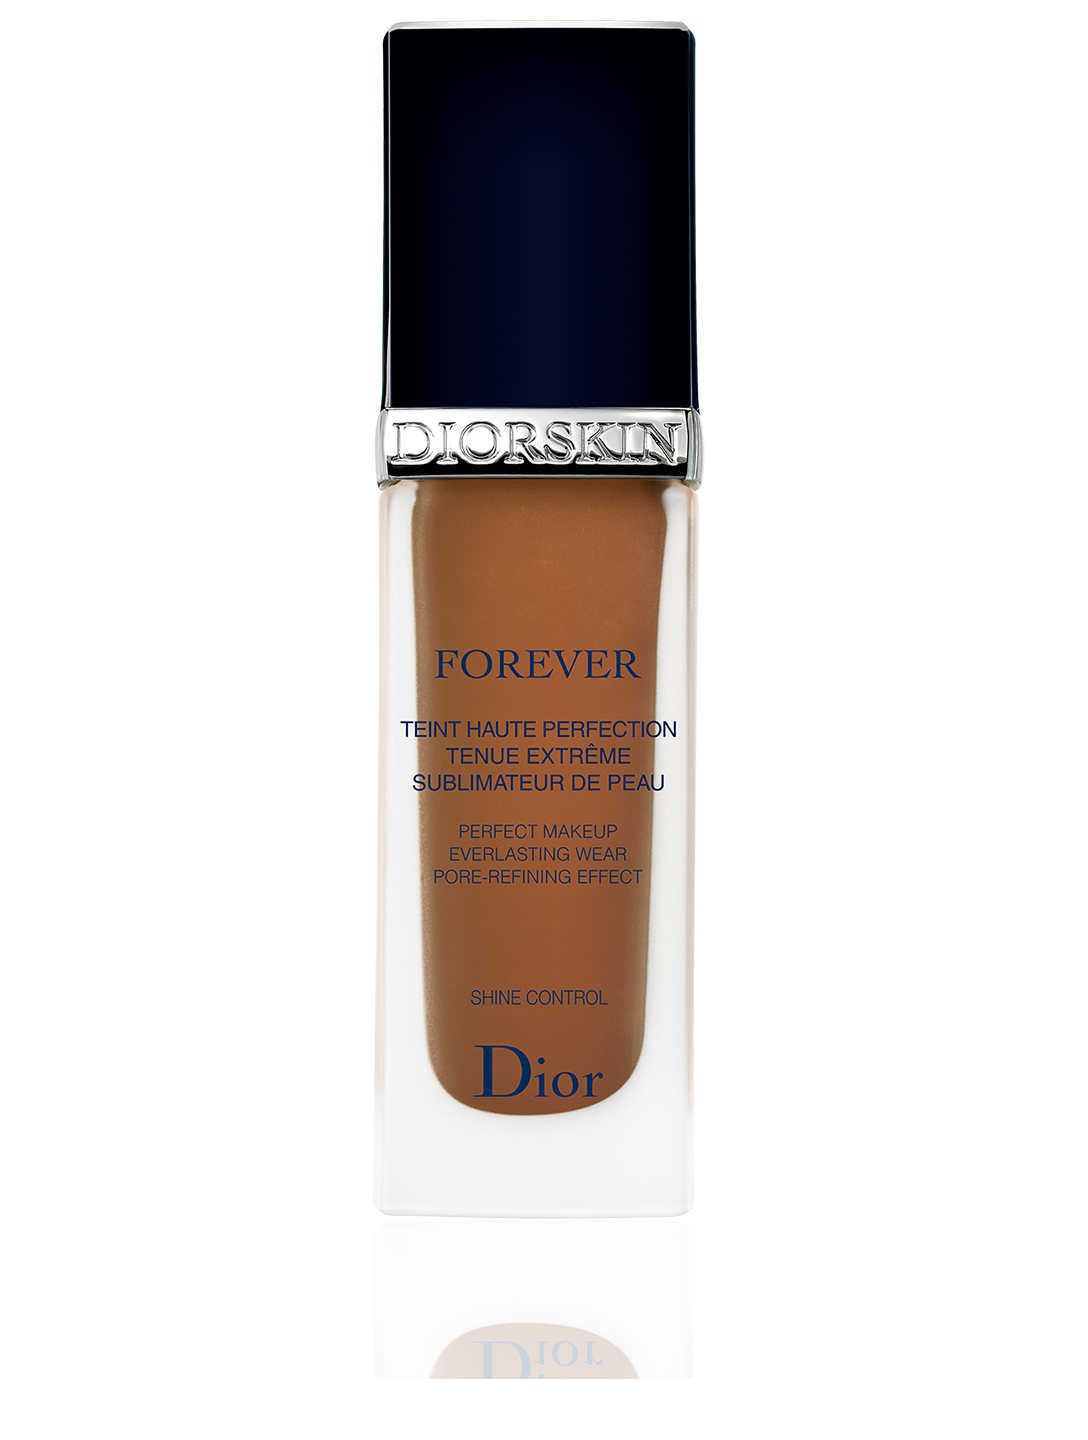 DIOR Teint haute perfection Diorskin Forever Beauté Marron